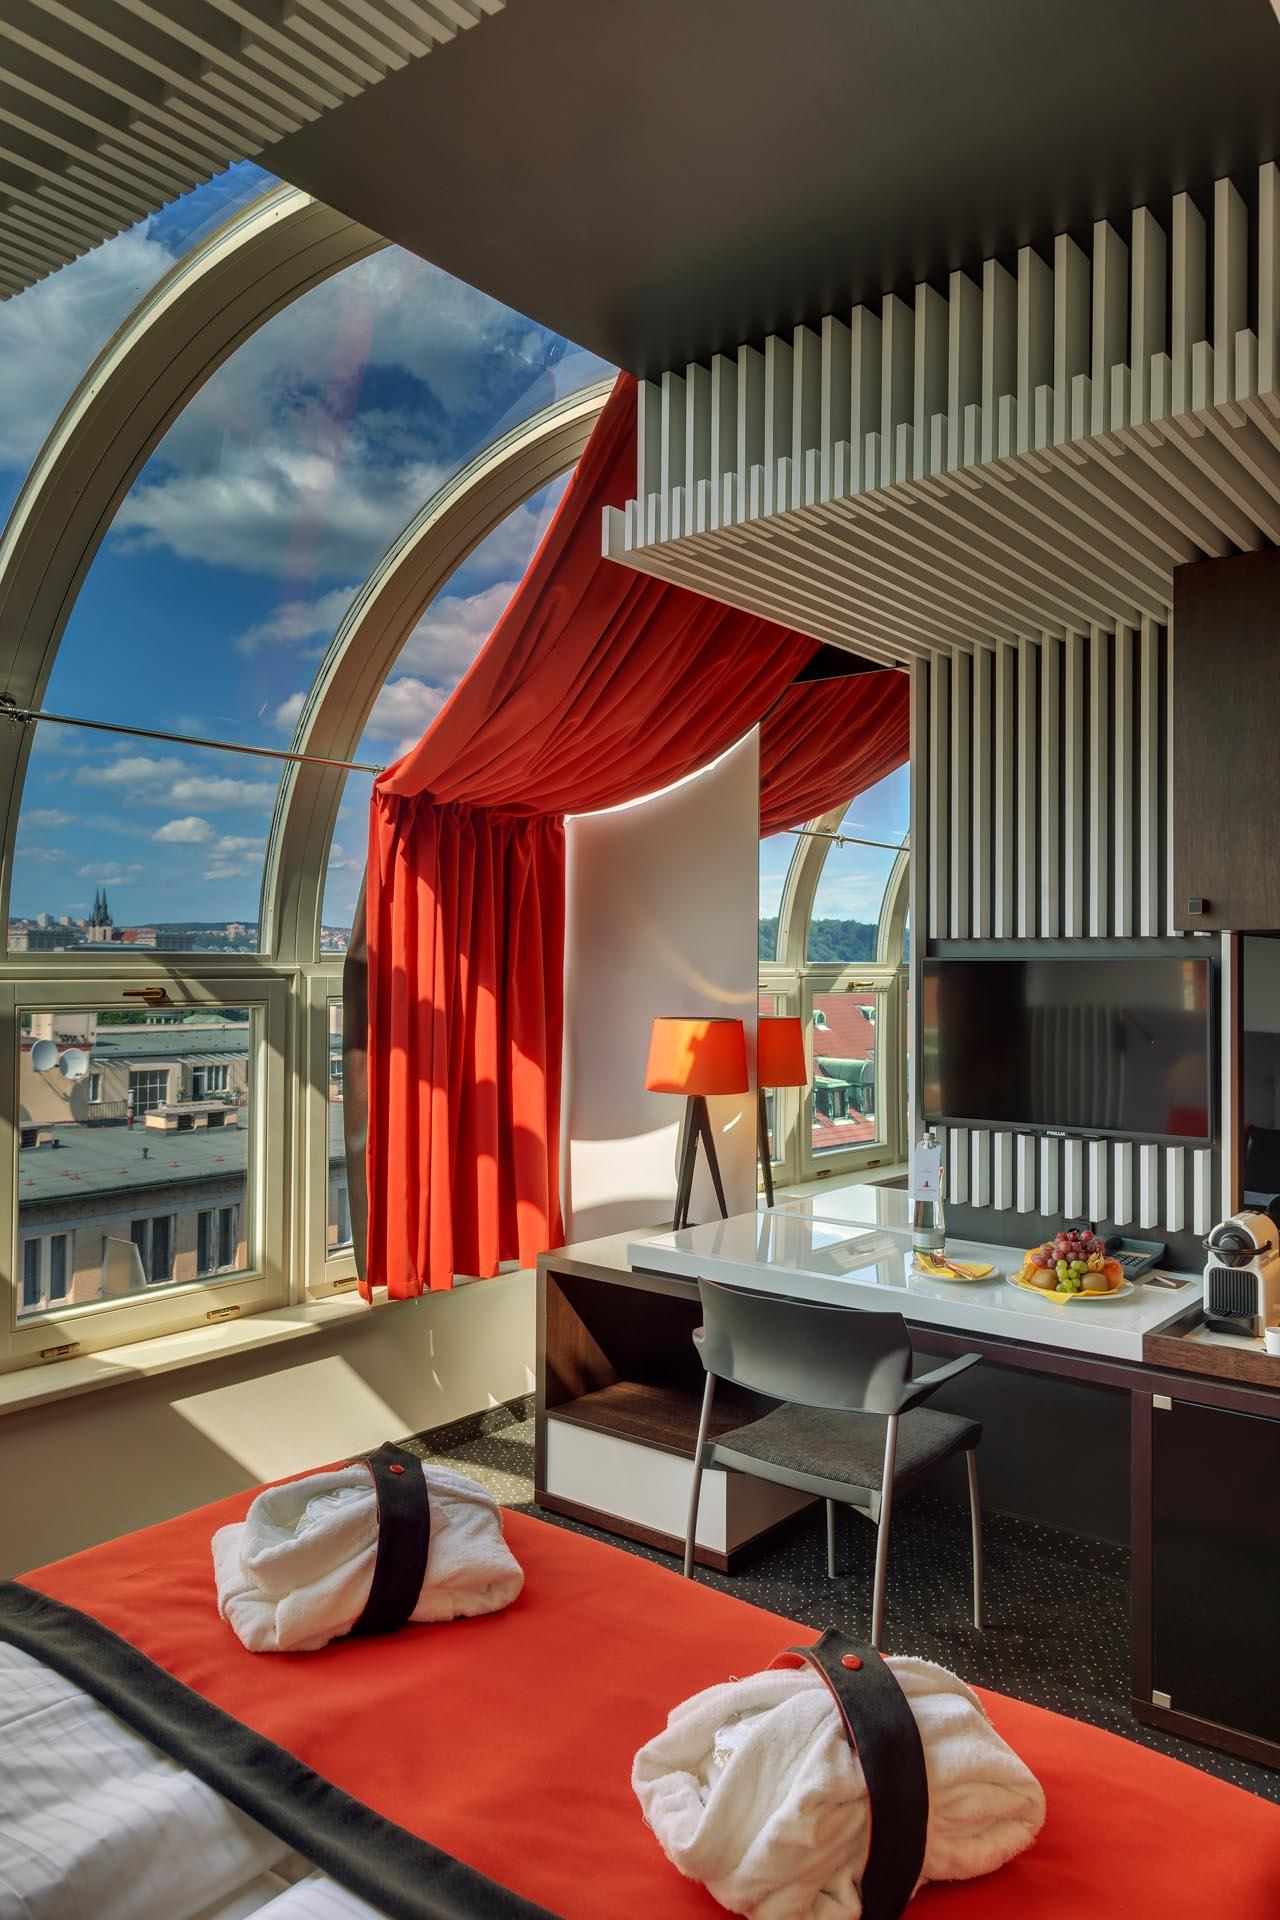 Superior Room with Panoramic Window at Hotel Clement Prague